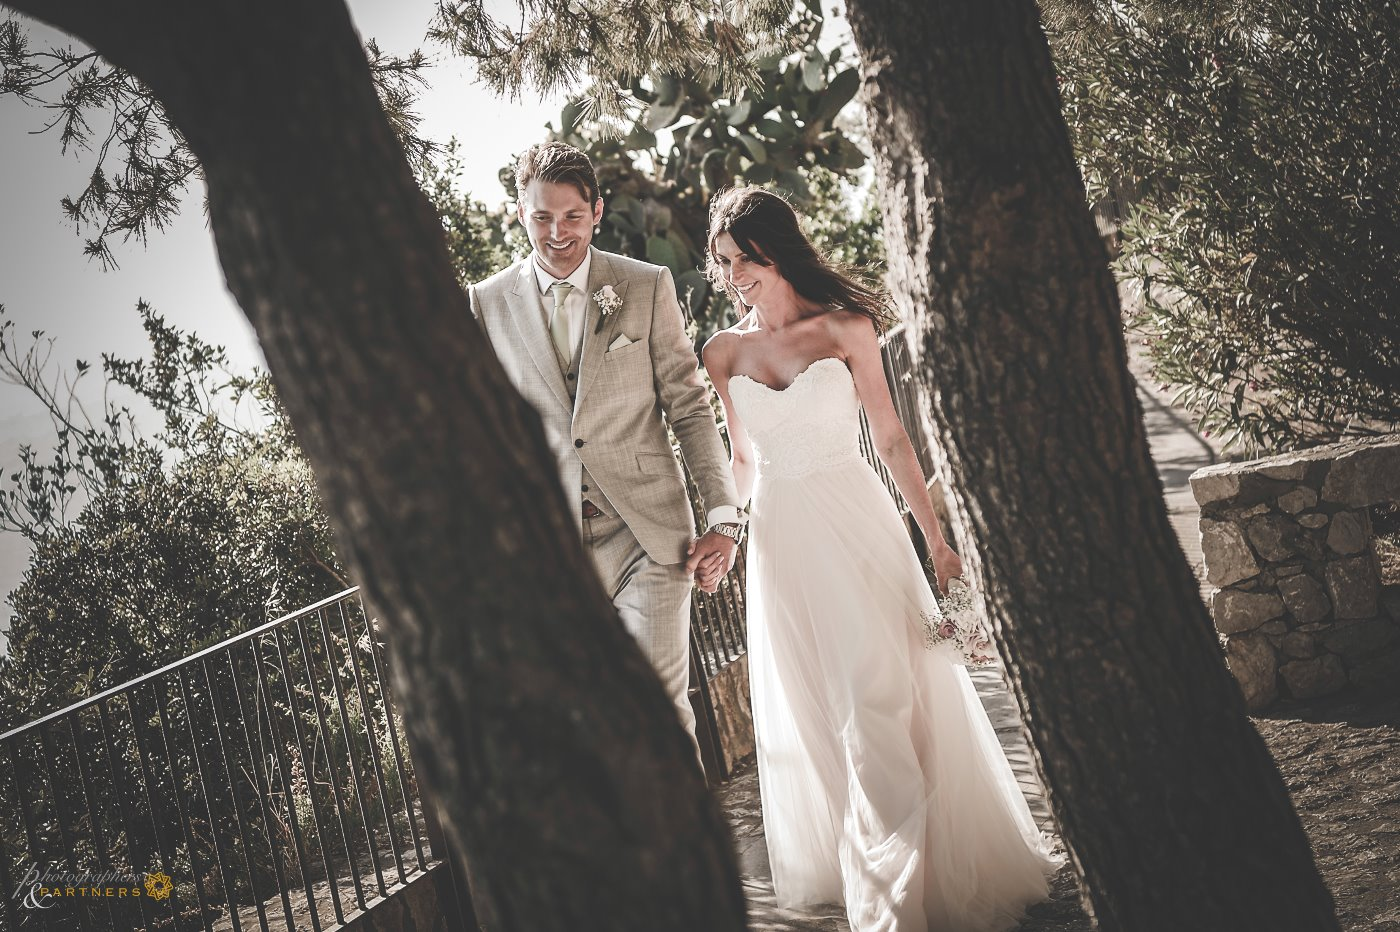 photography_weddings_capri_16.jpg